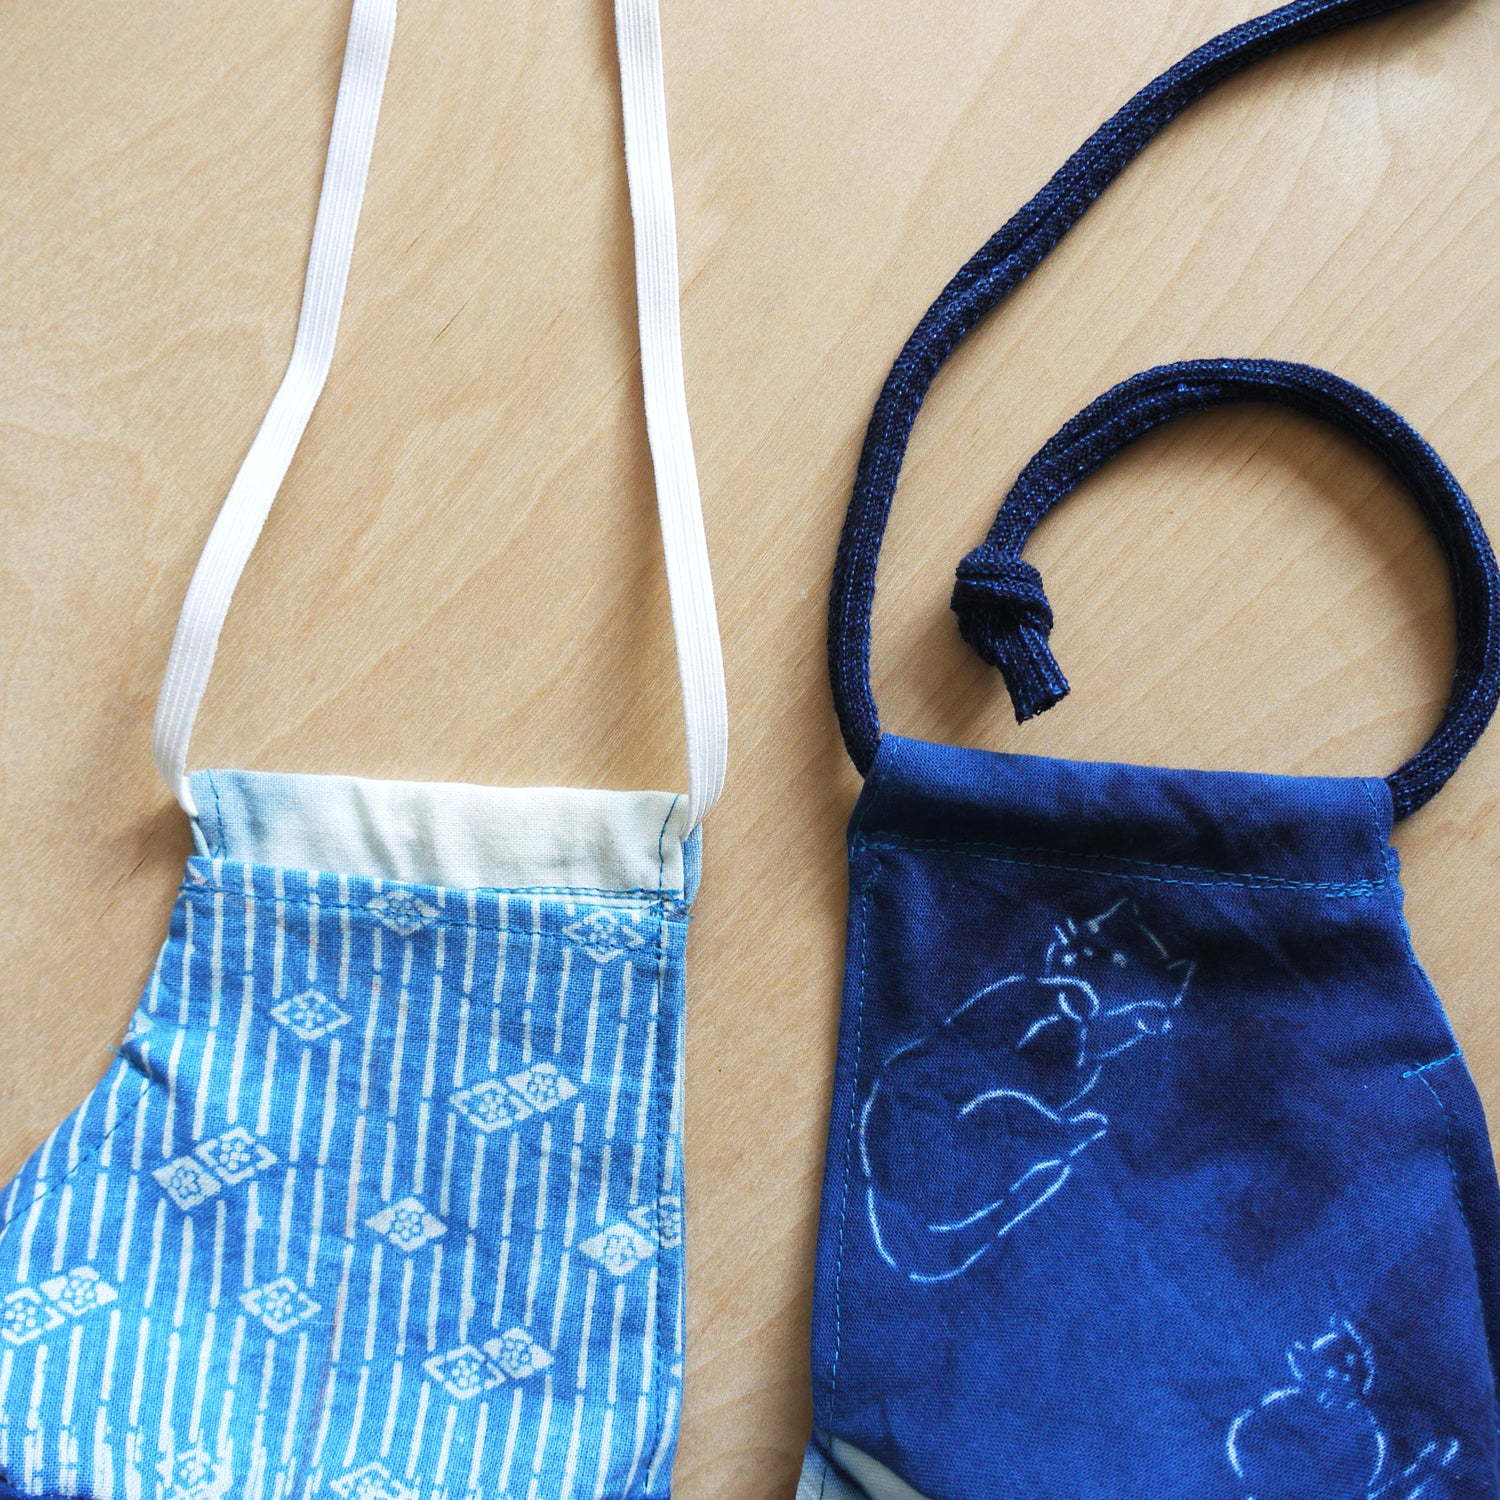 Face Mask, reusable natural dye cotton mask with adjustable straps, filter pocket, reversible, nose wire. Soft cotton. Handmade in the USA.